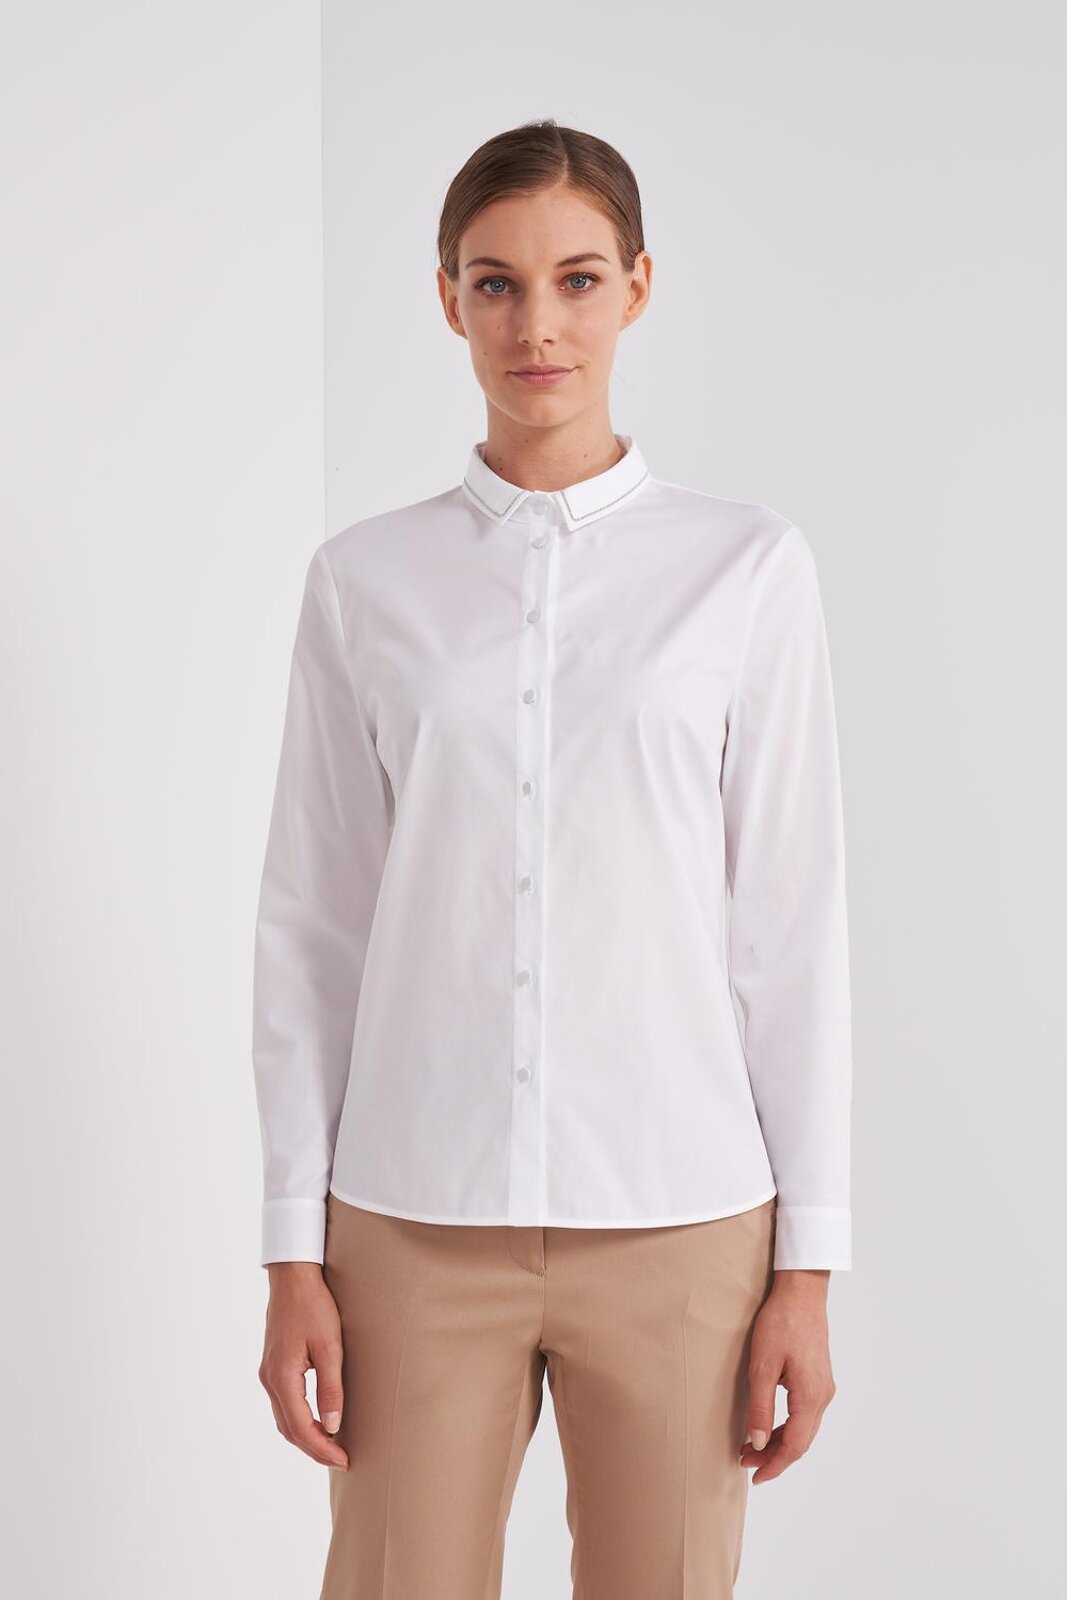 Long Sleeve Shirt In Pure Cotton Slightly Stretch. Point light detail on the collar, closure with buttons. Adherent fit. - Peserico